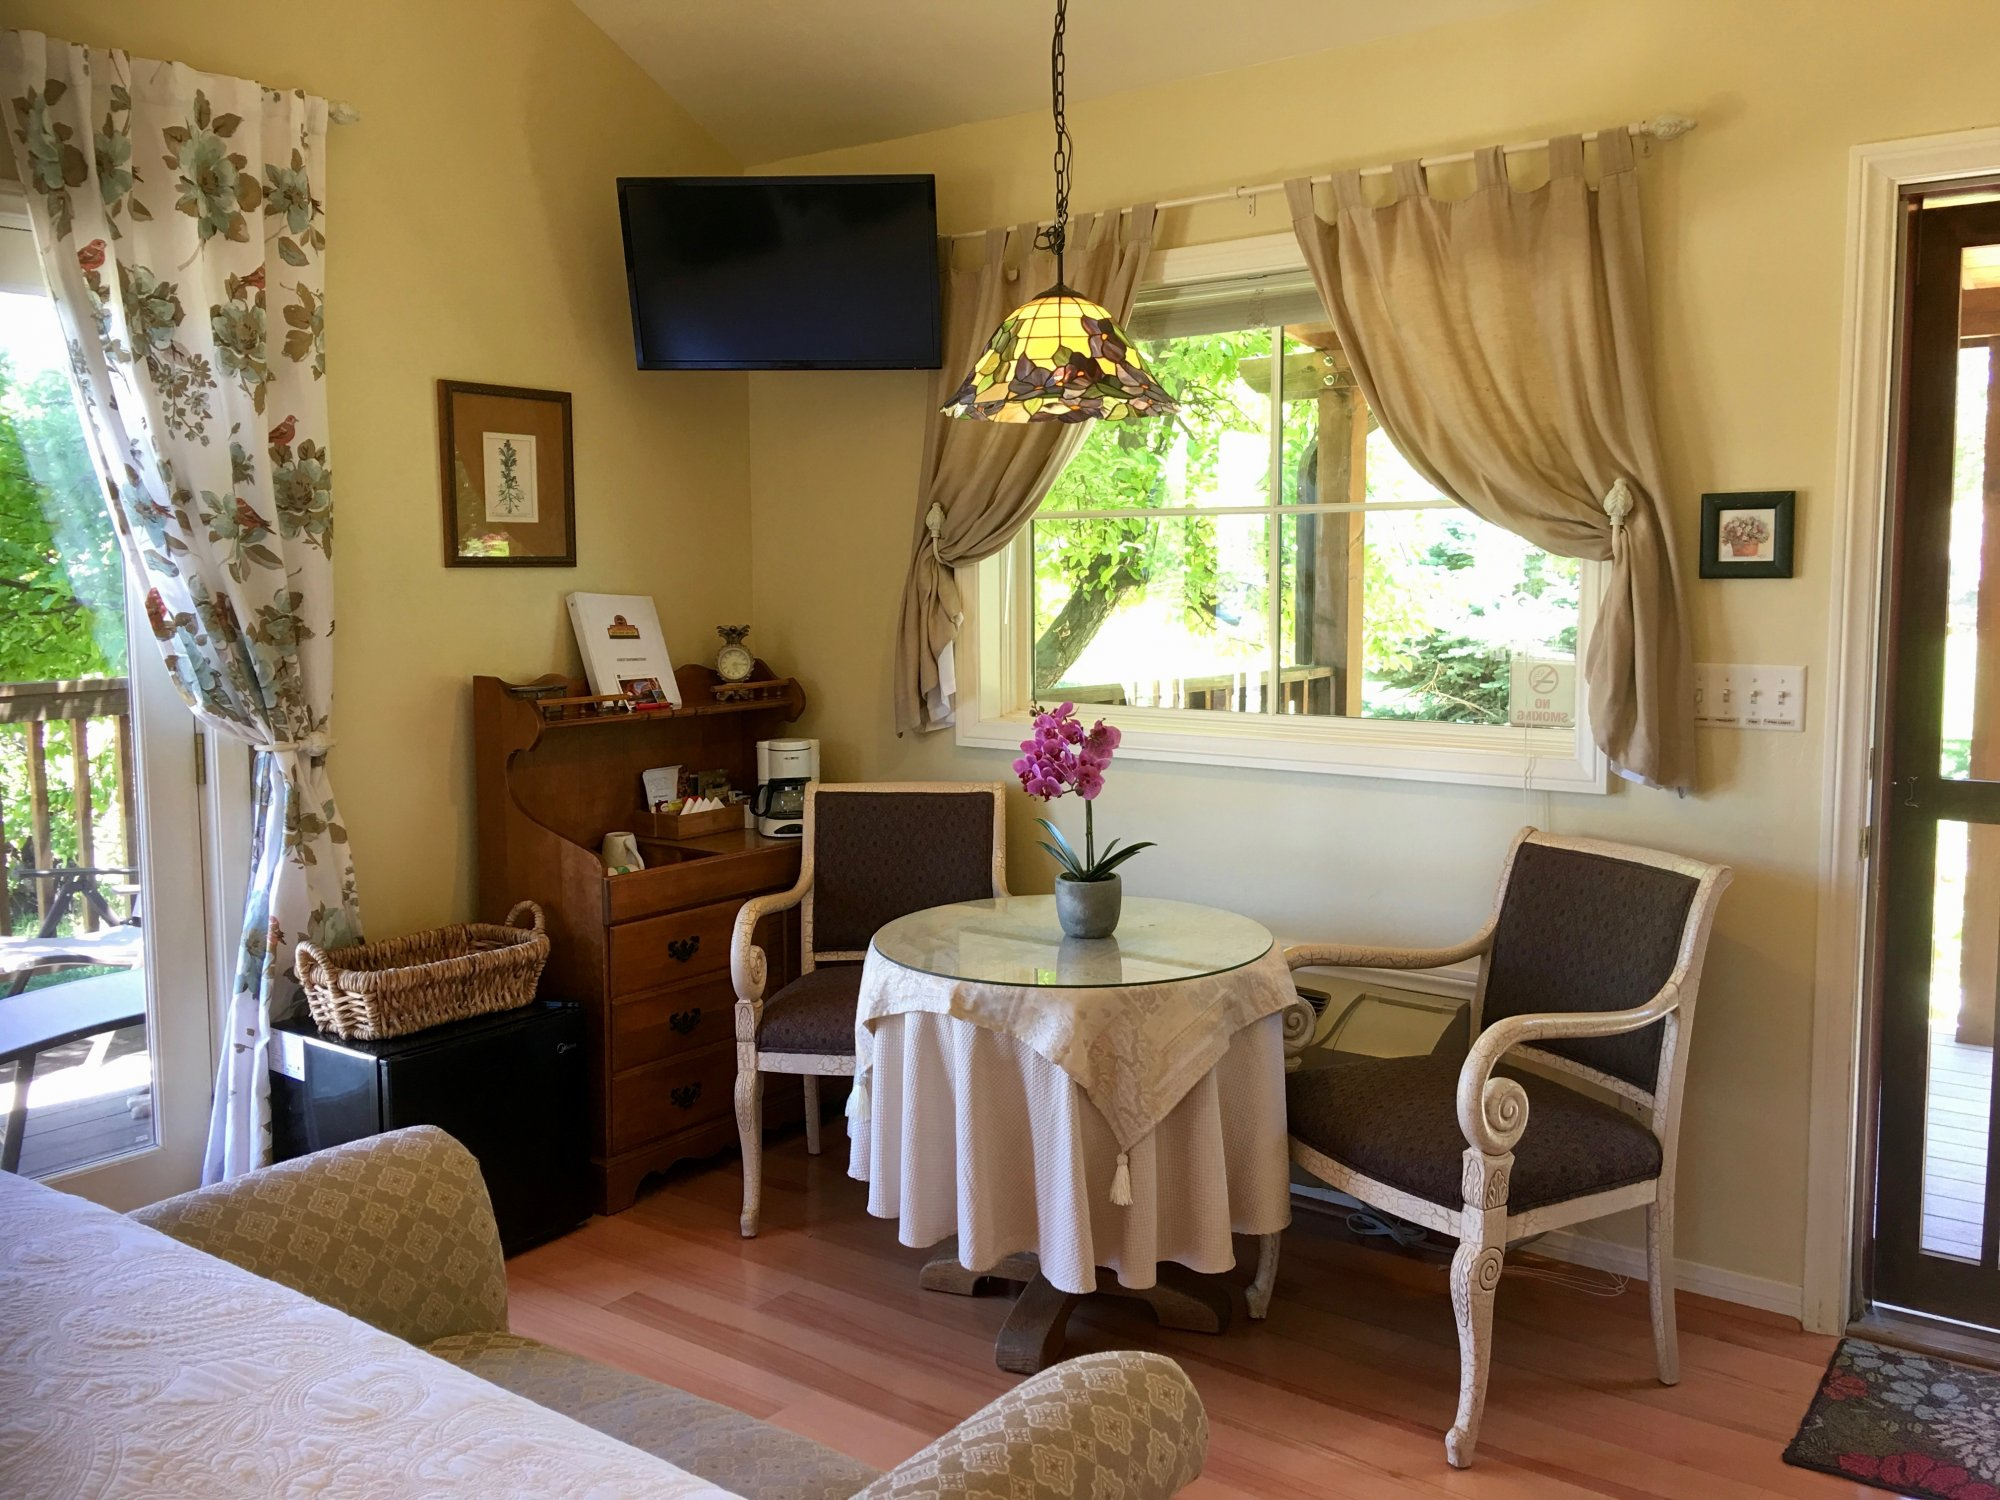 Garden Room - Escalante, Utah Lodging | Canyons Bed and Breakfast